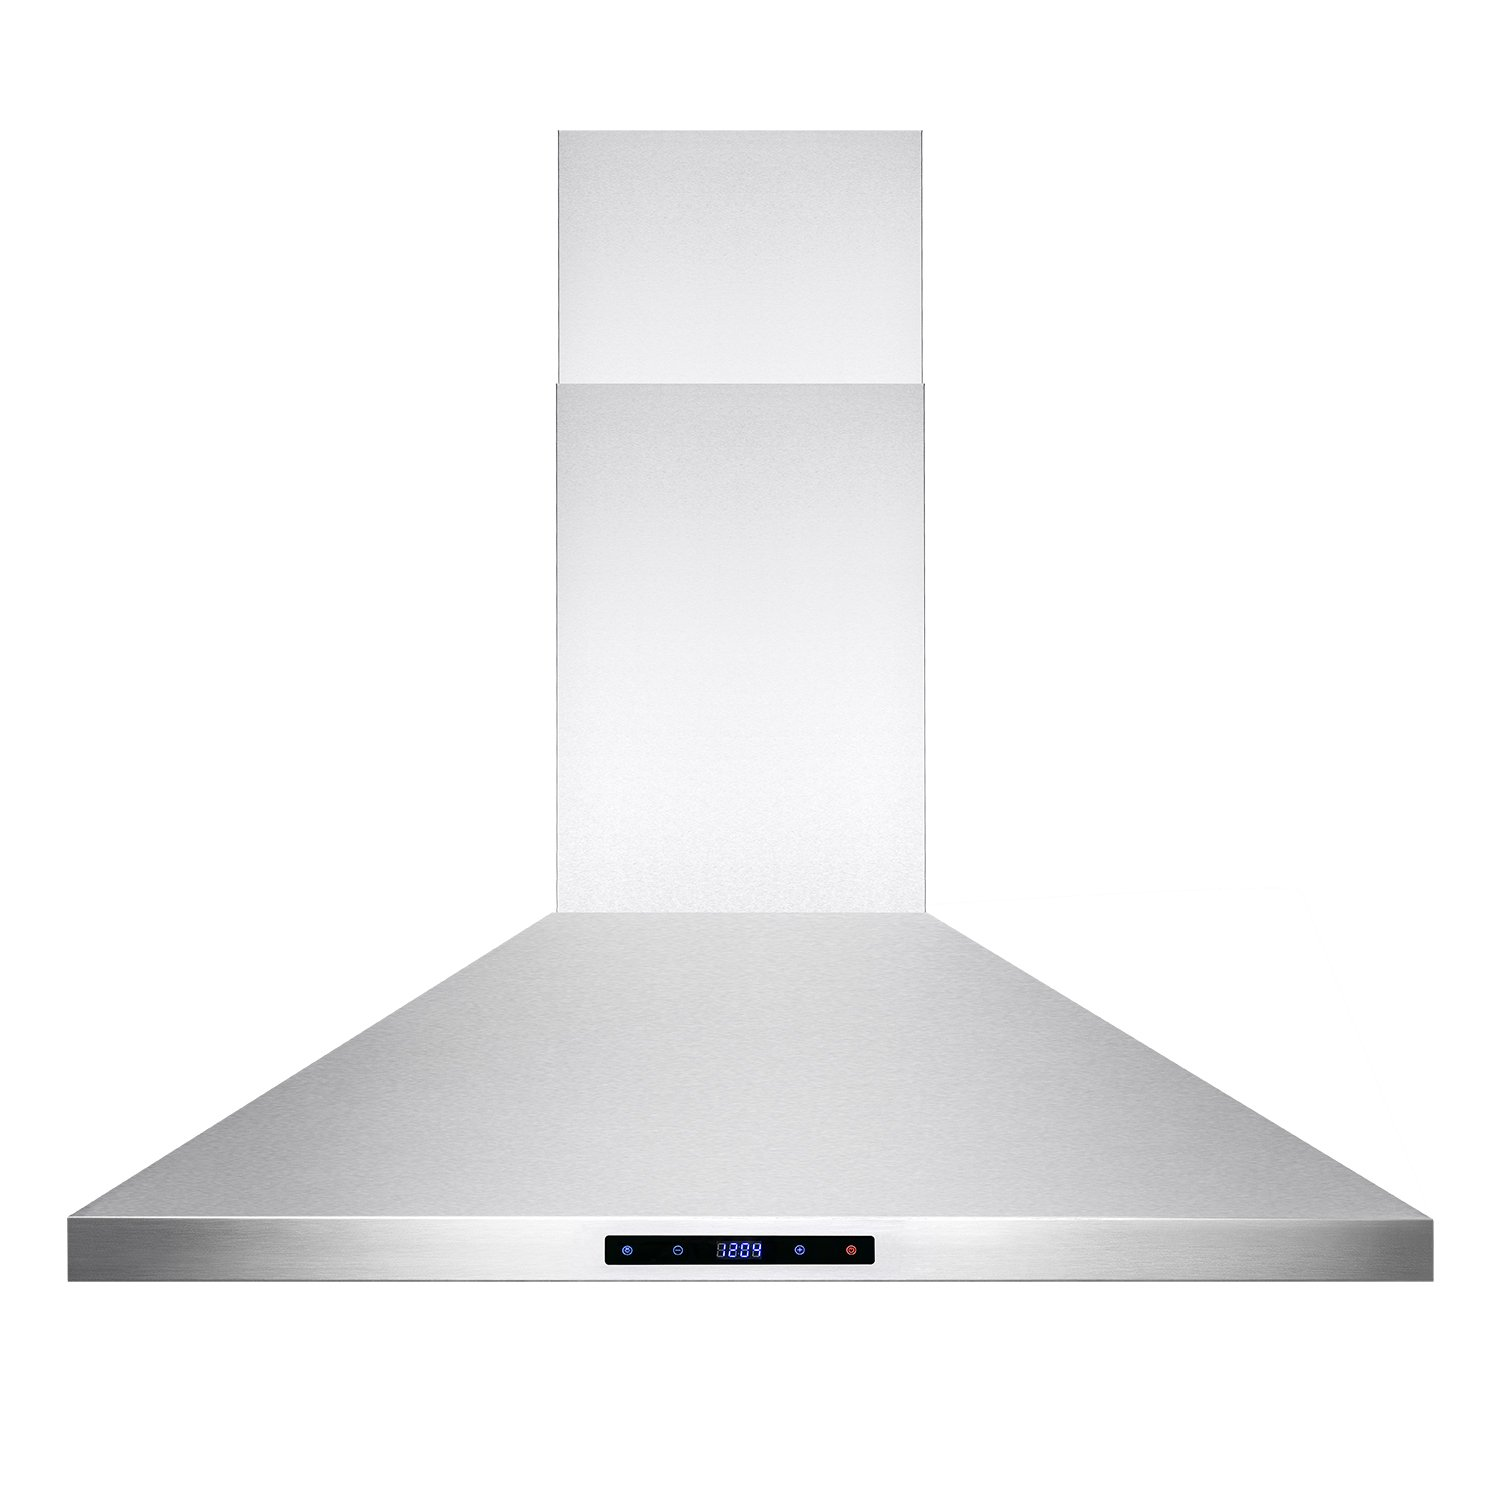 amazoncom firebird stainless steel wall mount range hood 36inch carbon filters included appliances